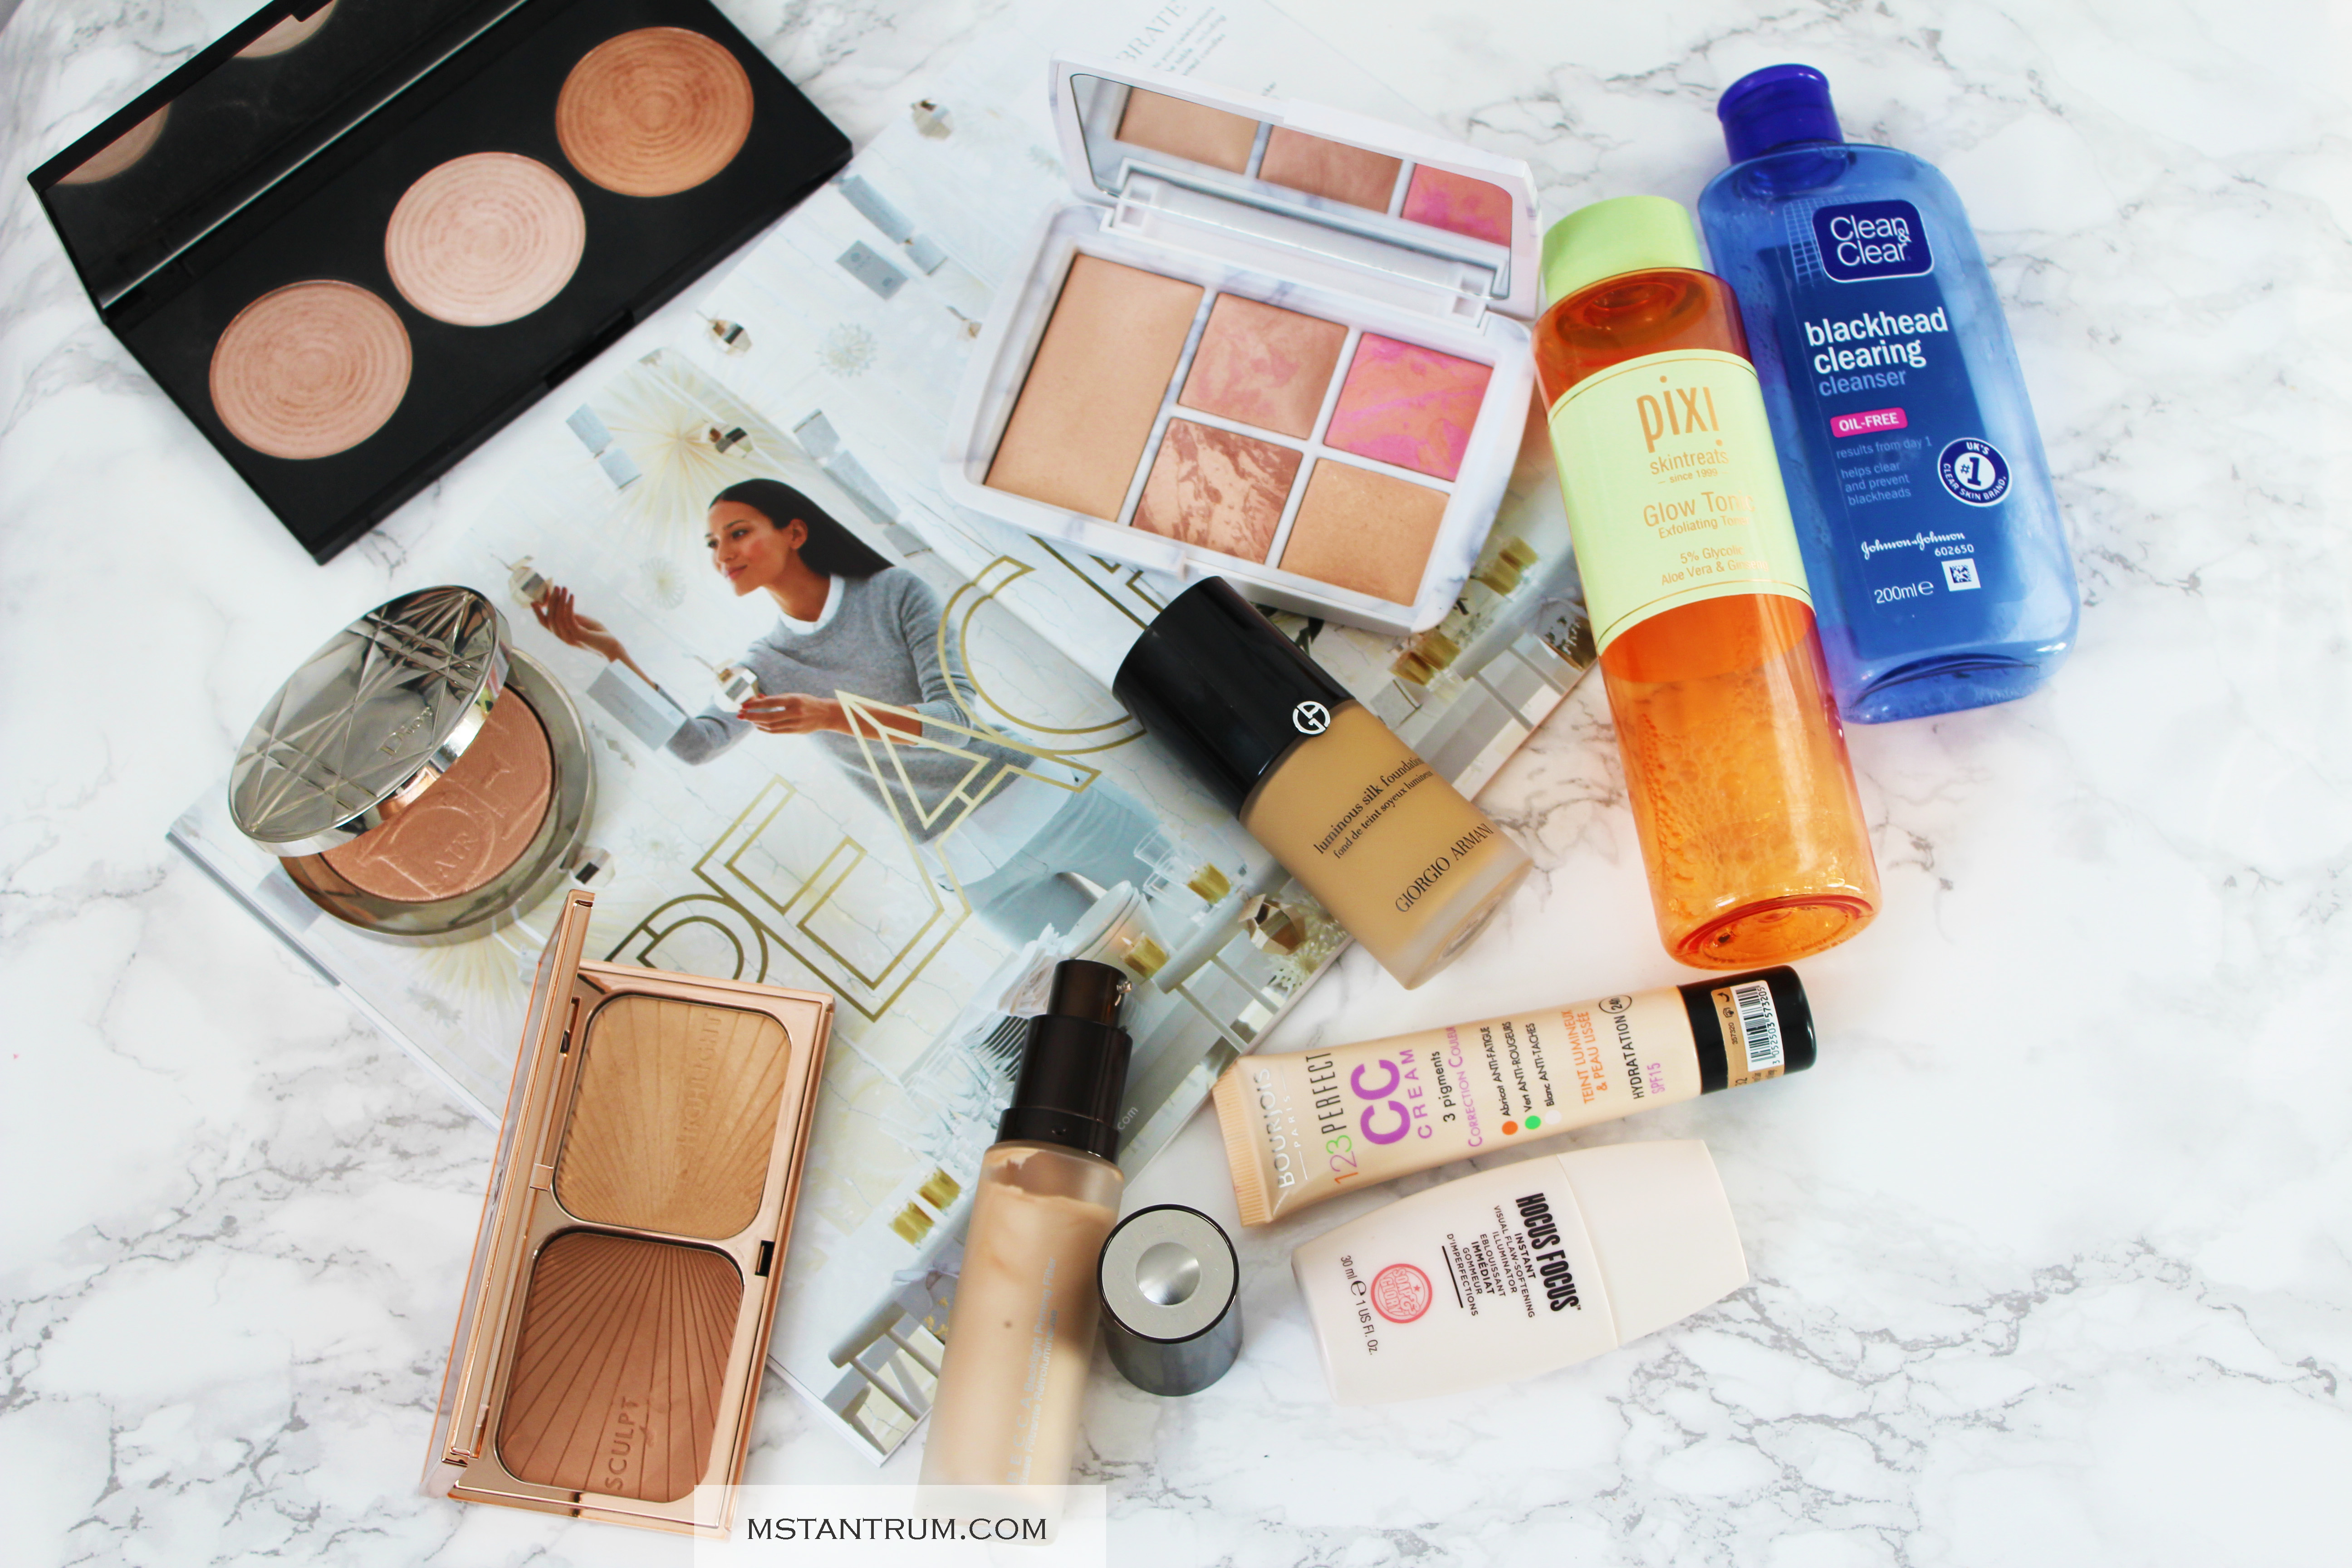 Autumn Winter glow getters